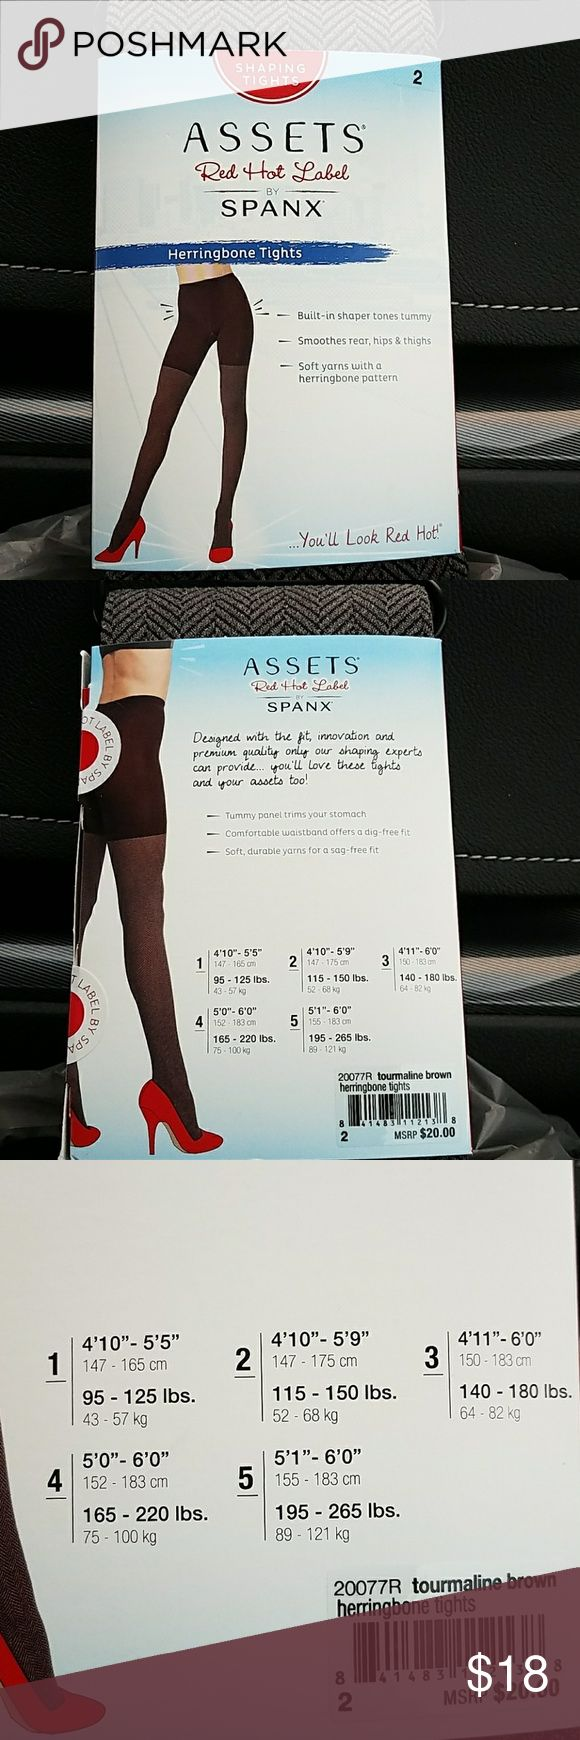 Nwt Assets by Spanx Nwt Assets by Spanx chevron tights. Assets By Spanx Accessories Hosiery & Socks